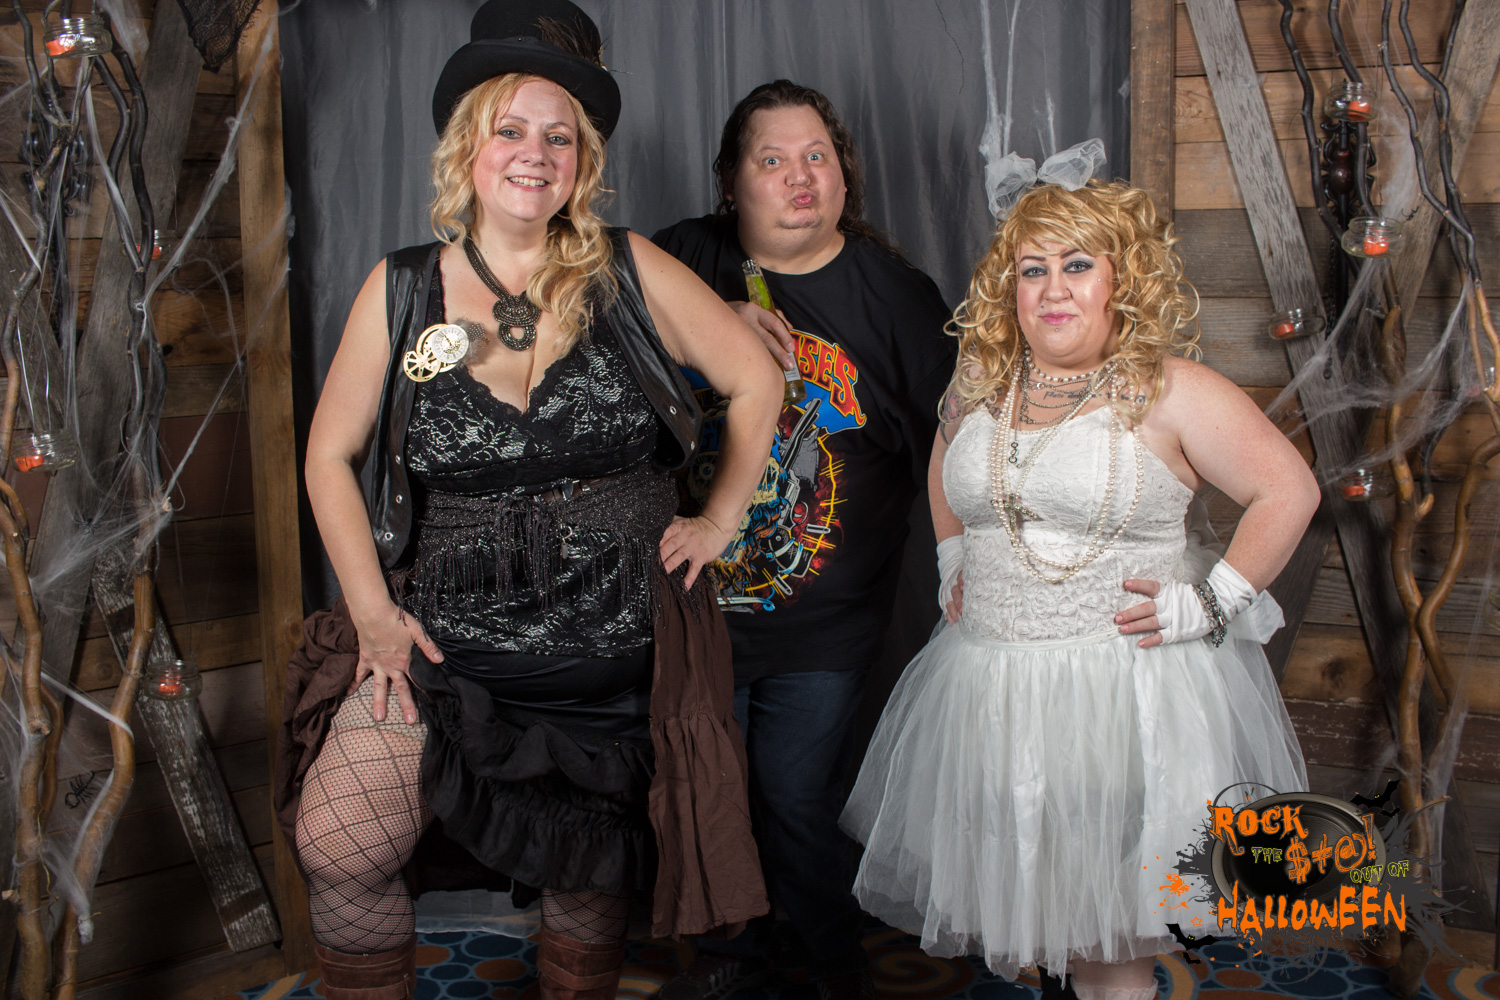 Halloween-PhotoBooth-021-6742